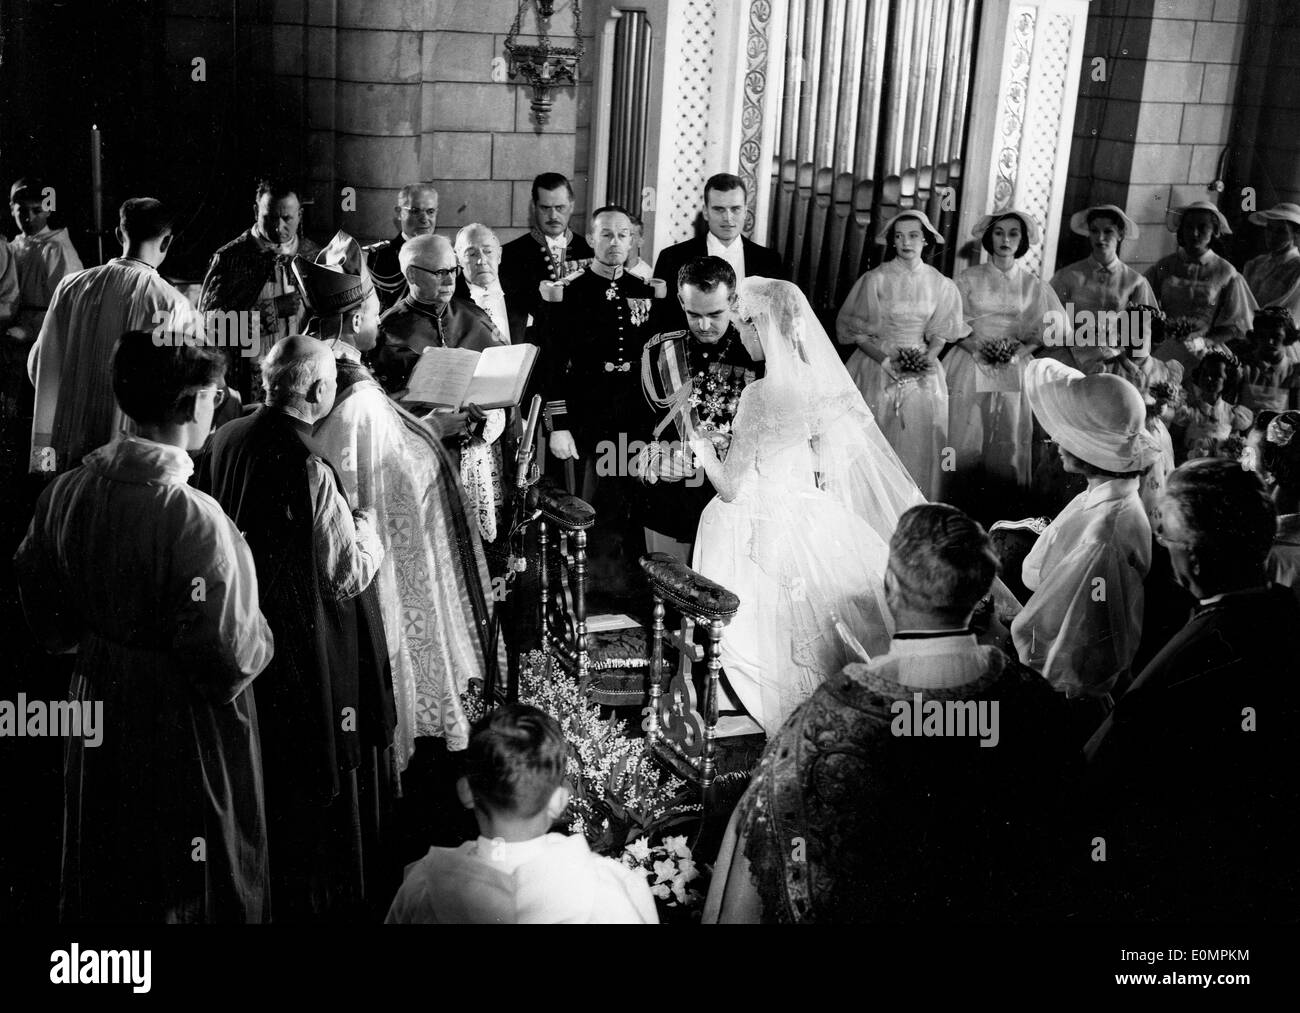 Prince Rainier marries Grace Kelly at the Monaco Cathedral - Stock Image